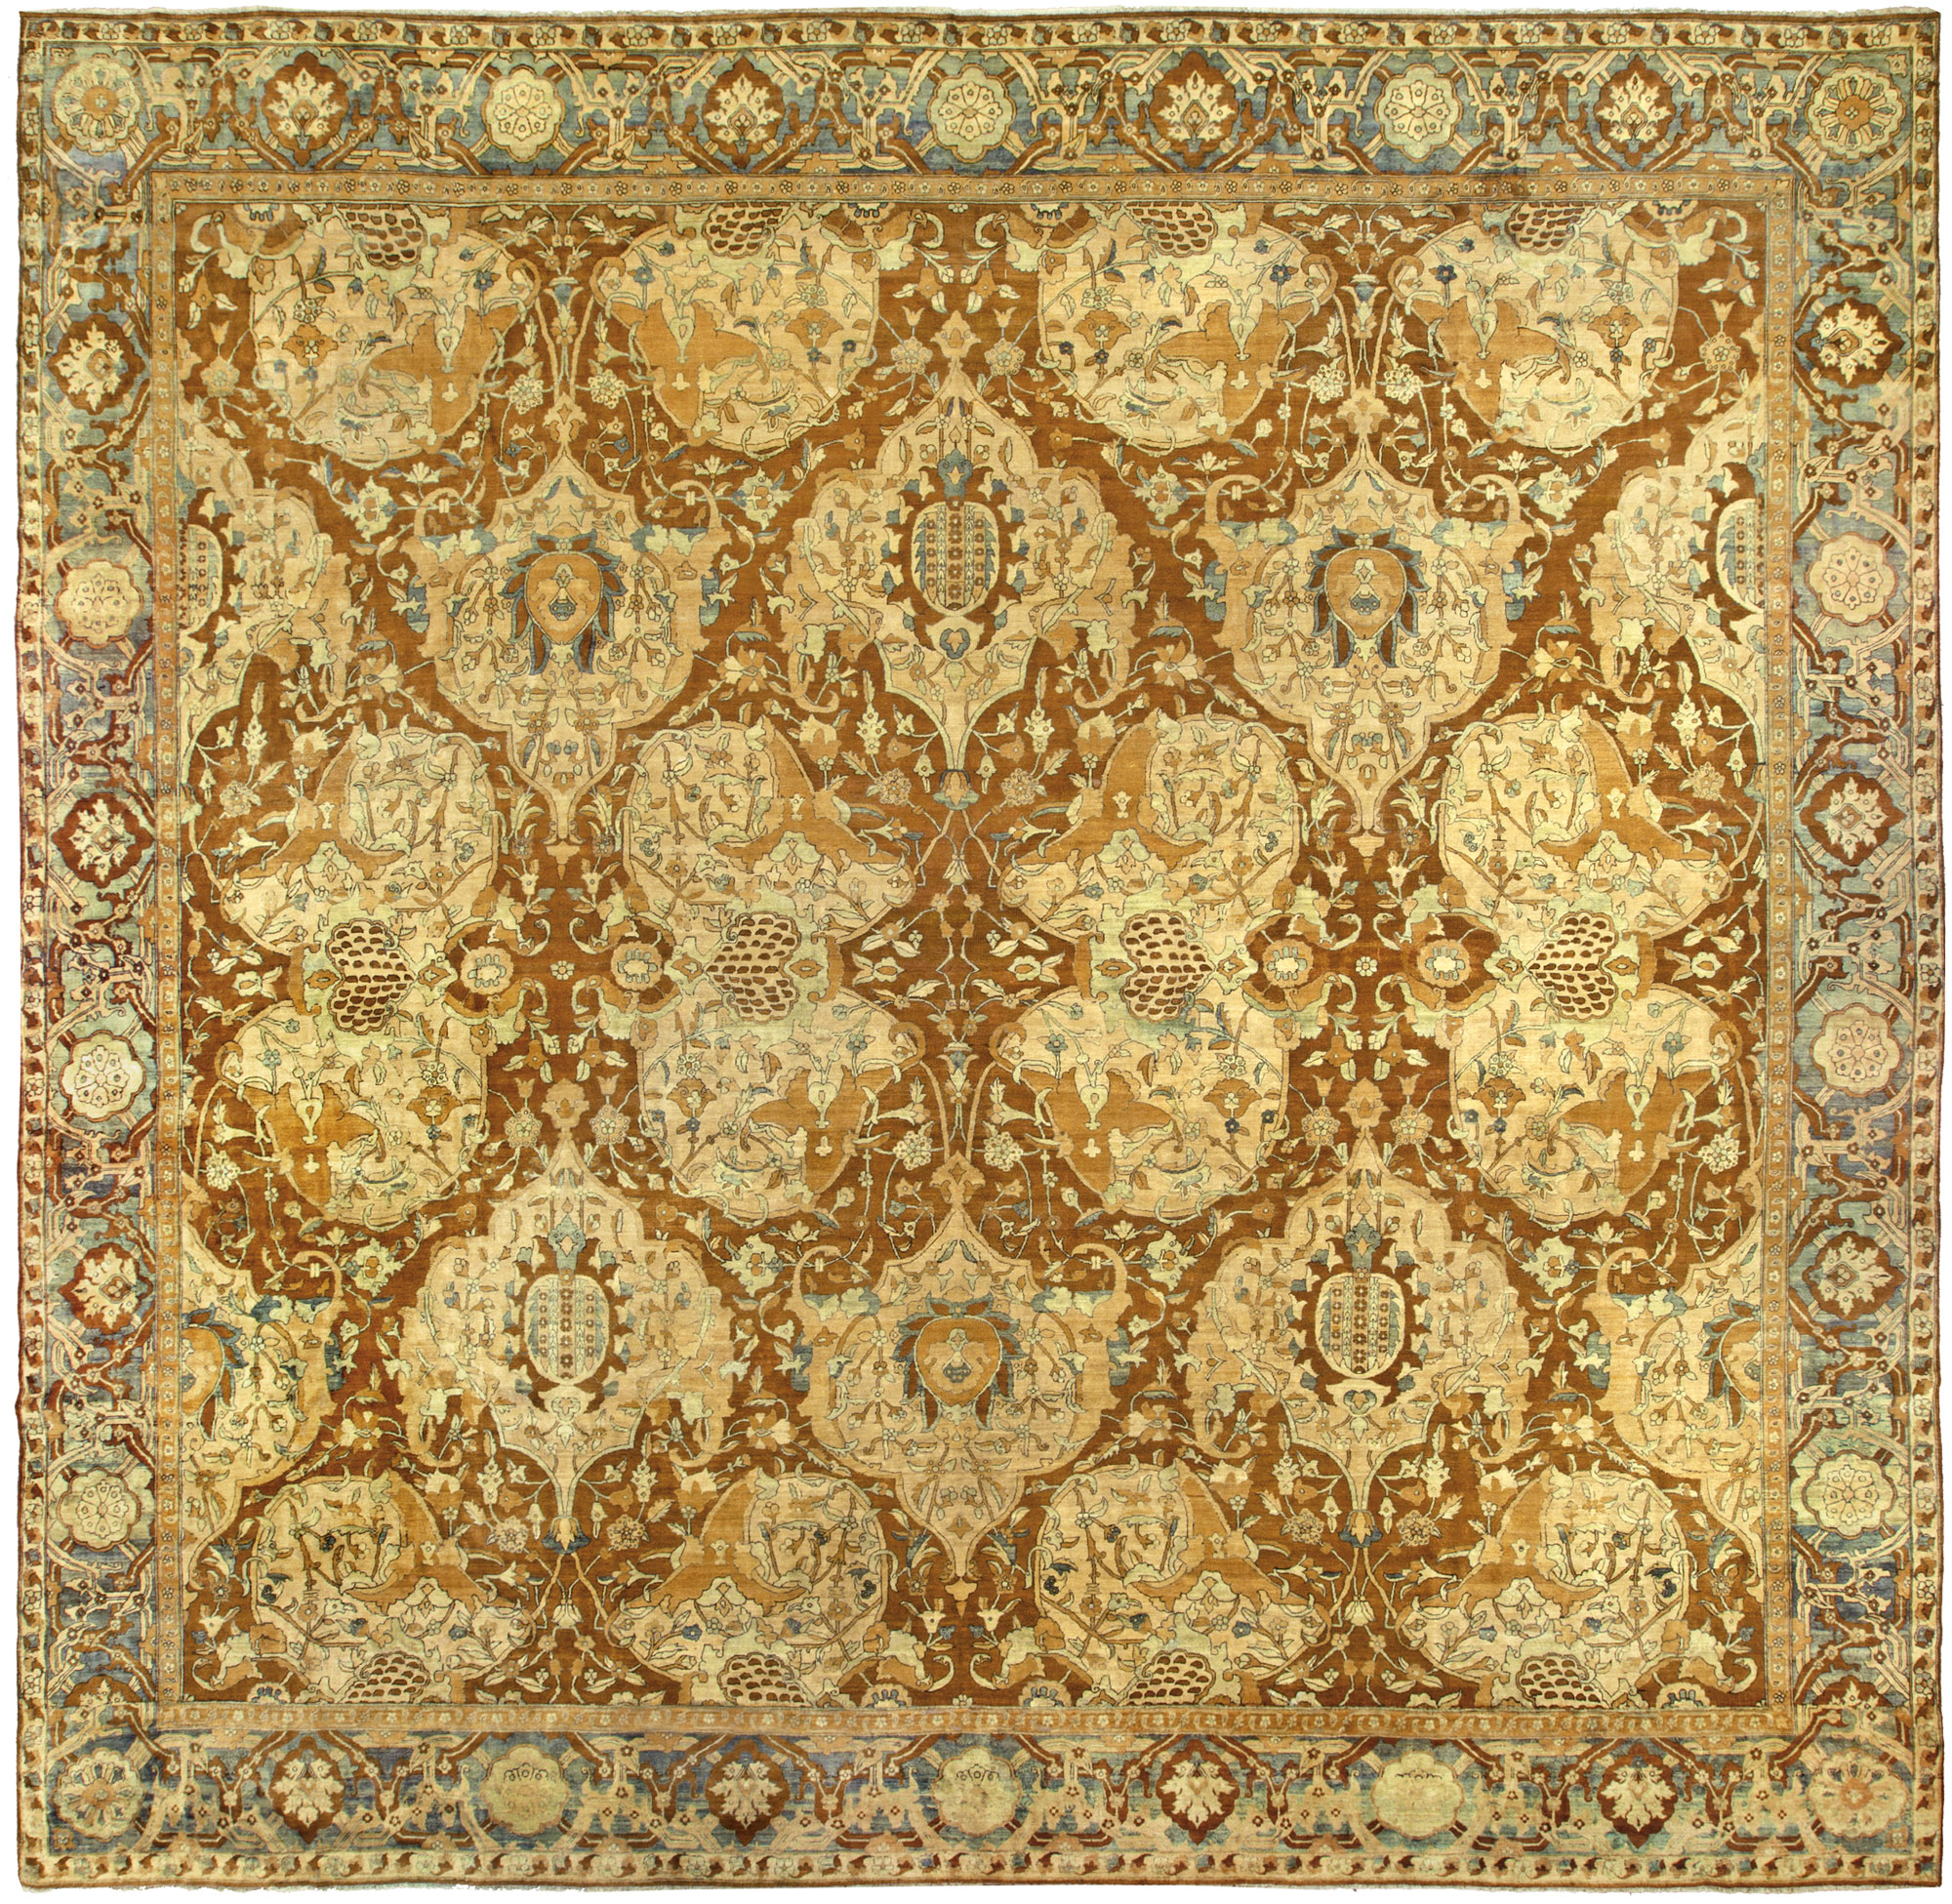 Antique Indian Rugs From New York Gallery Doris Leslie Blau